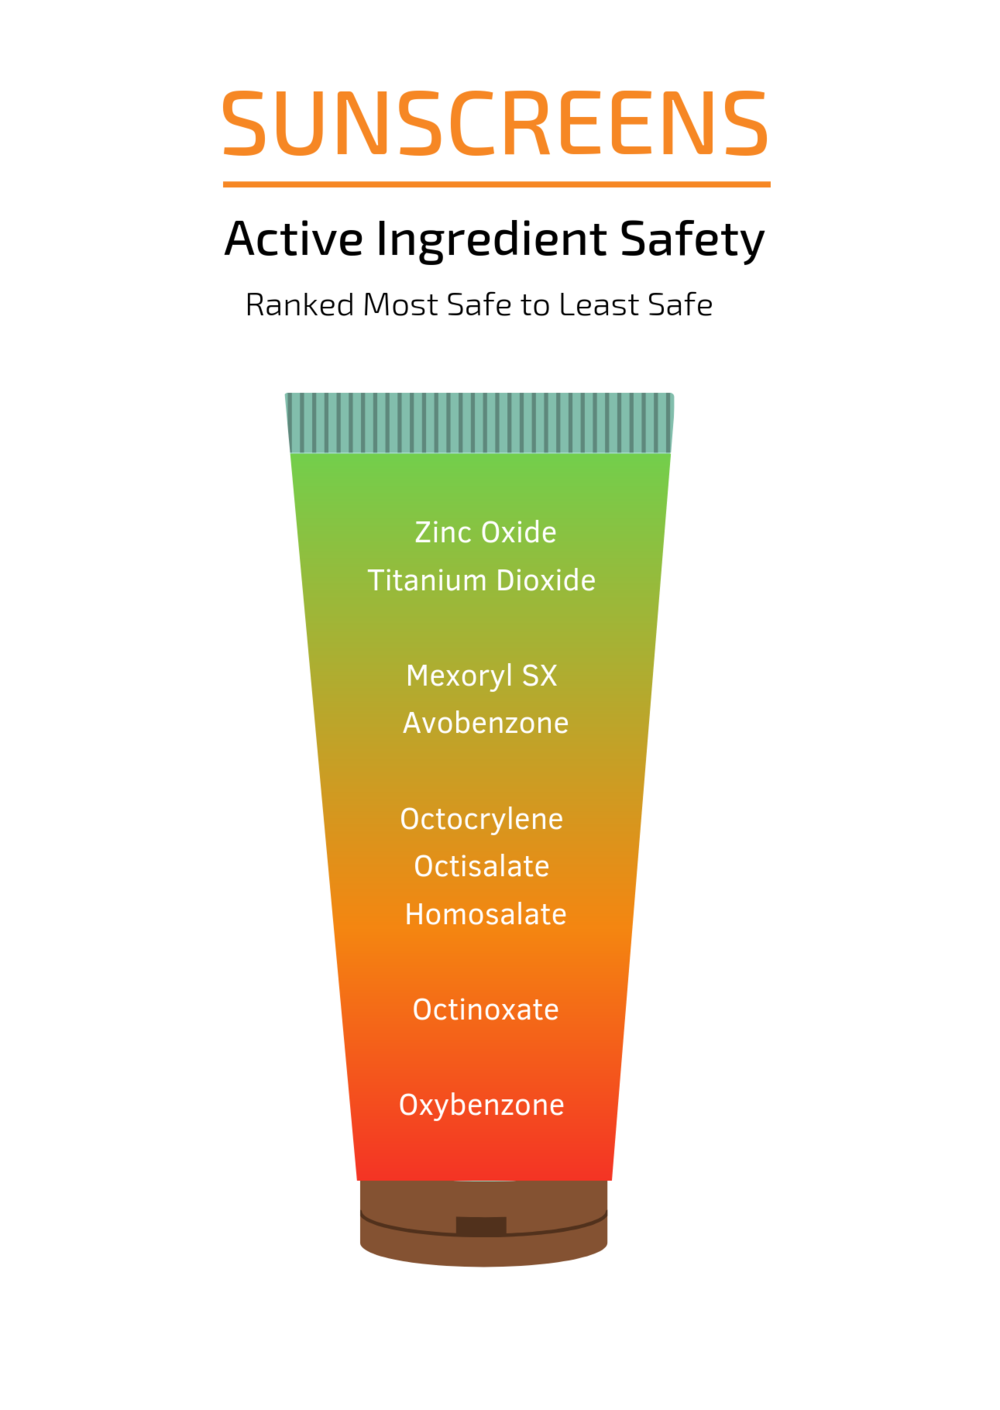 IS YOUR SUNSCREEN SAFE -sunscreen active ingredients ranked.png